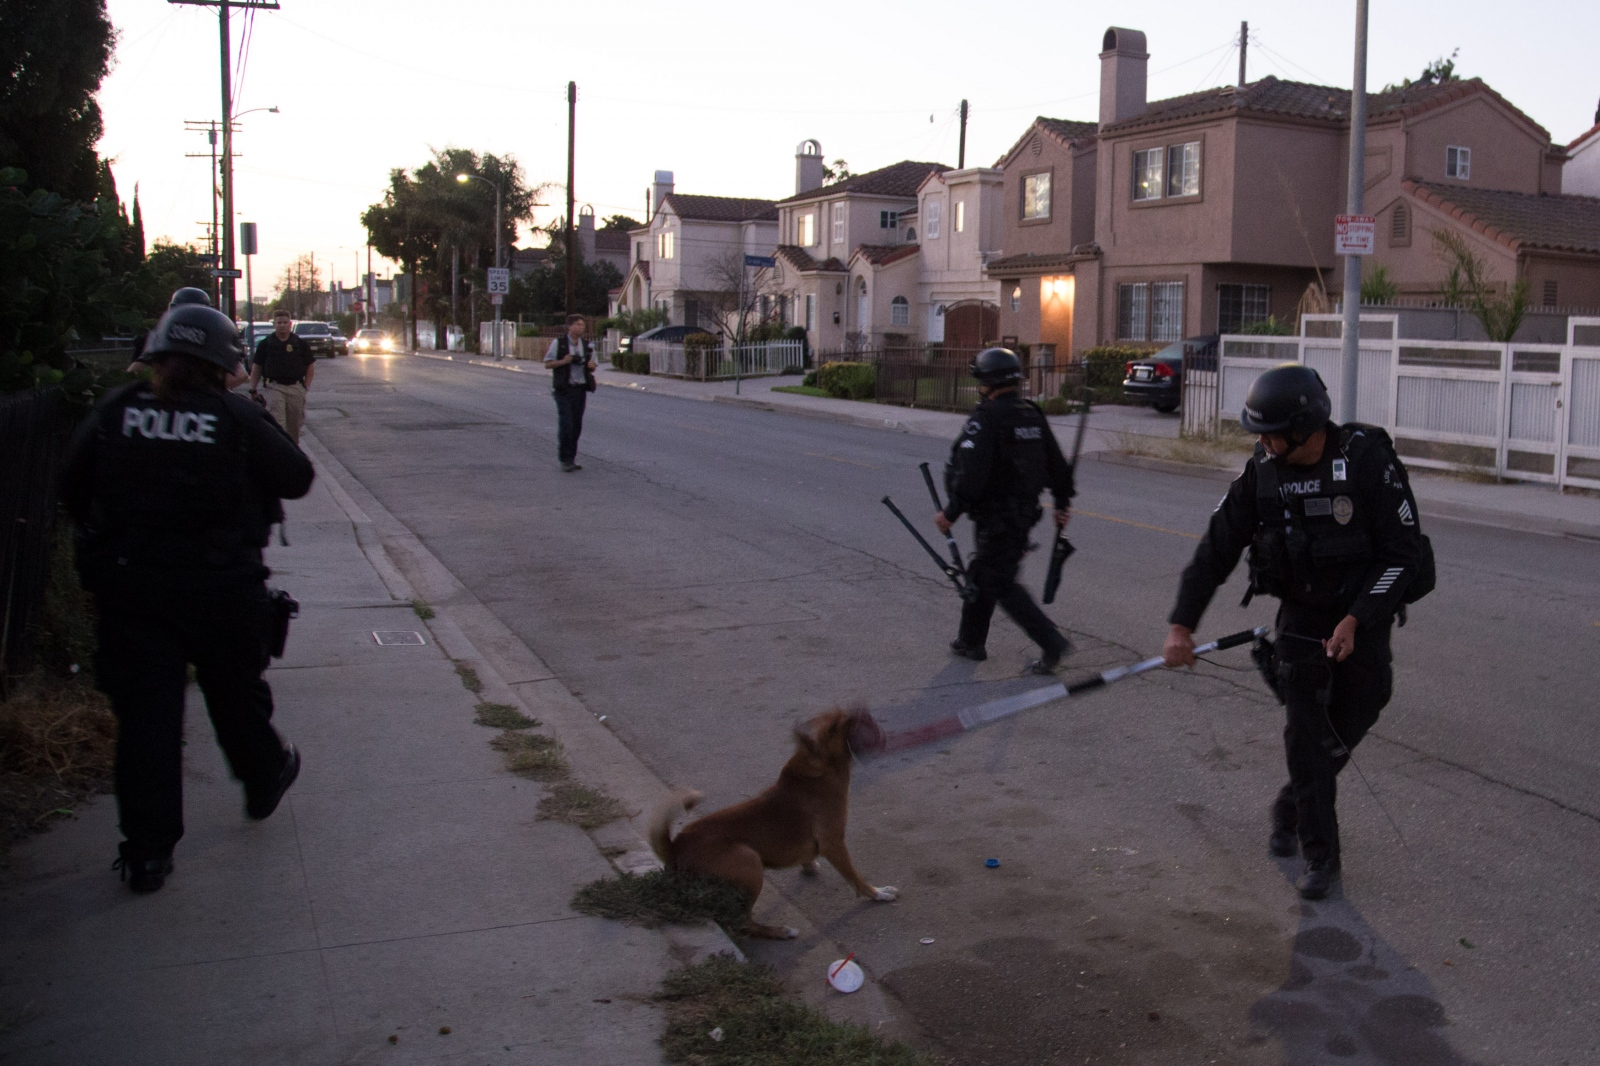 Officers with the LAPD Internet Crimes Against Children Task Force control a dog while executing a warrant in the Watts neighborhood of Los Angeles.